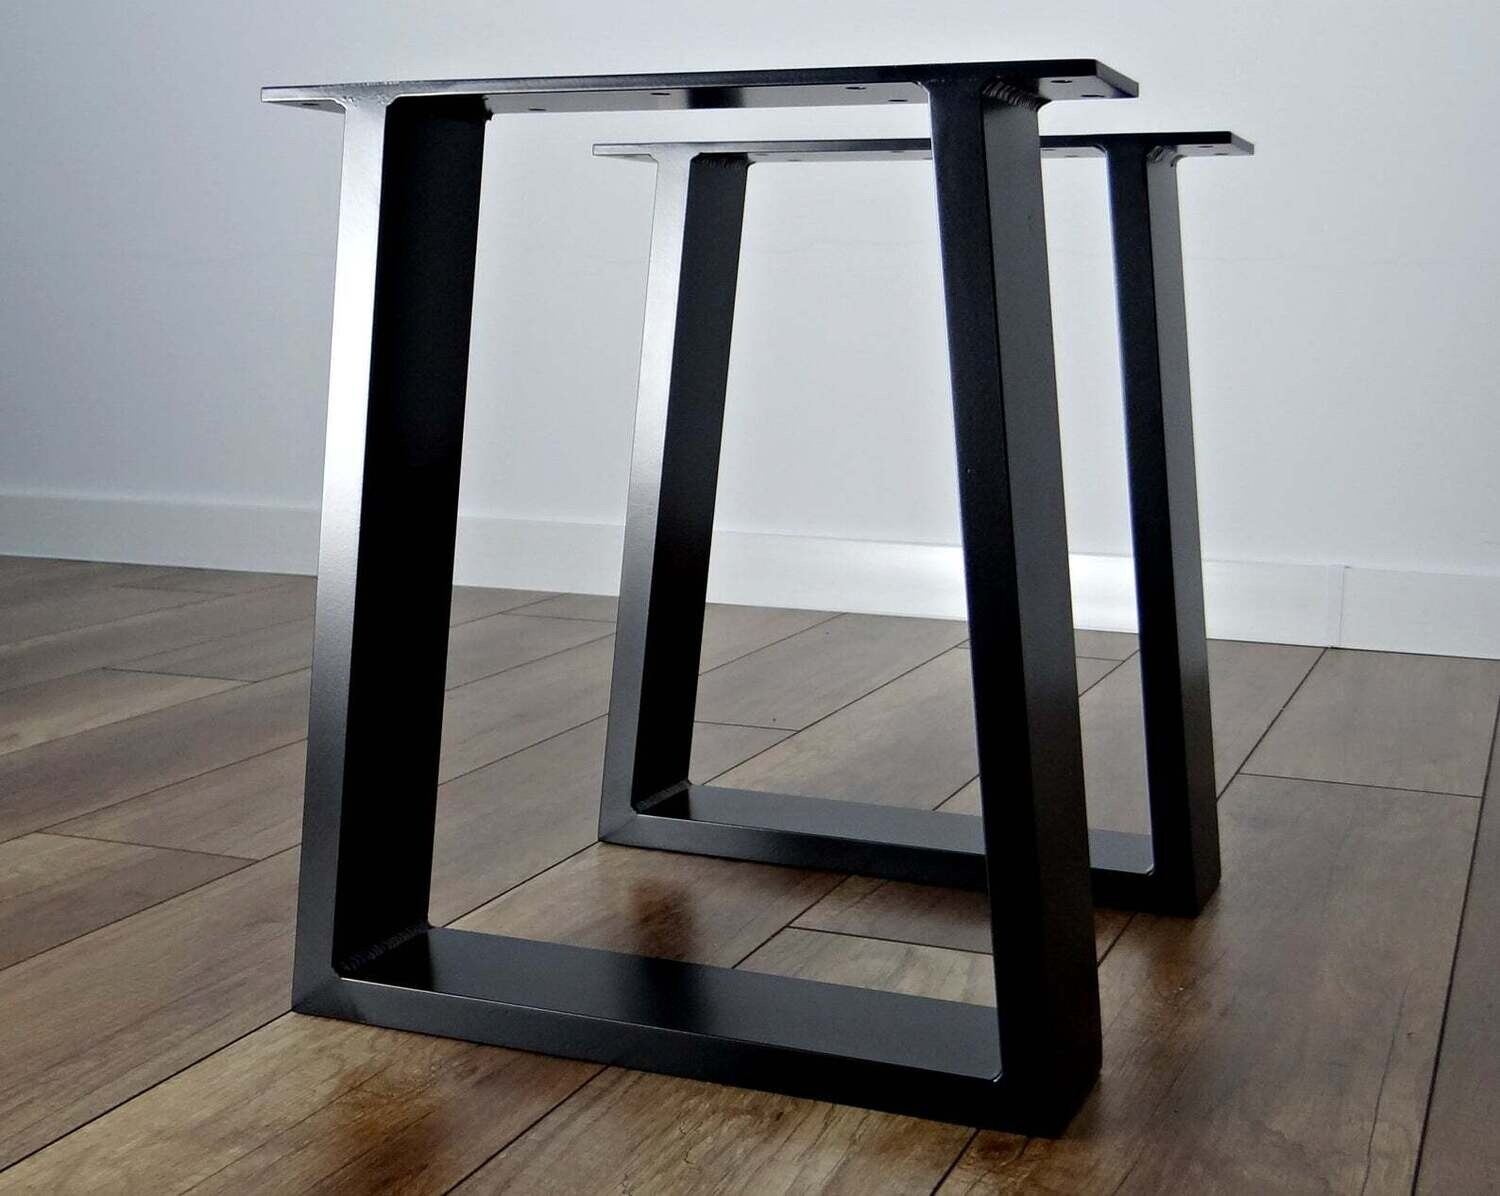 Metal Coffee Table Legs (2). Steel coffee table legs for bench, stool. Trapezoid iron coffee table legs. [D064]